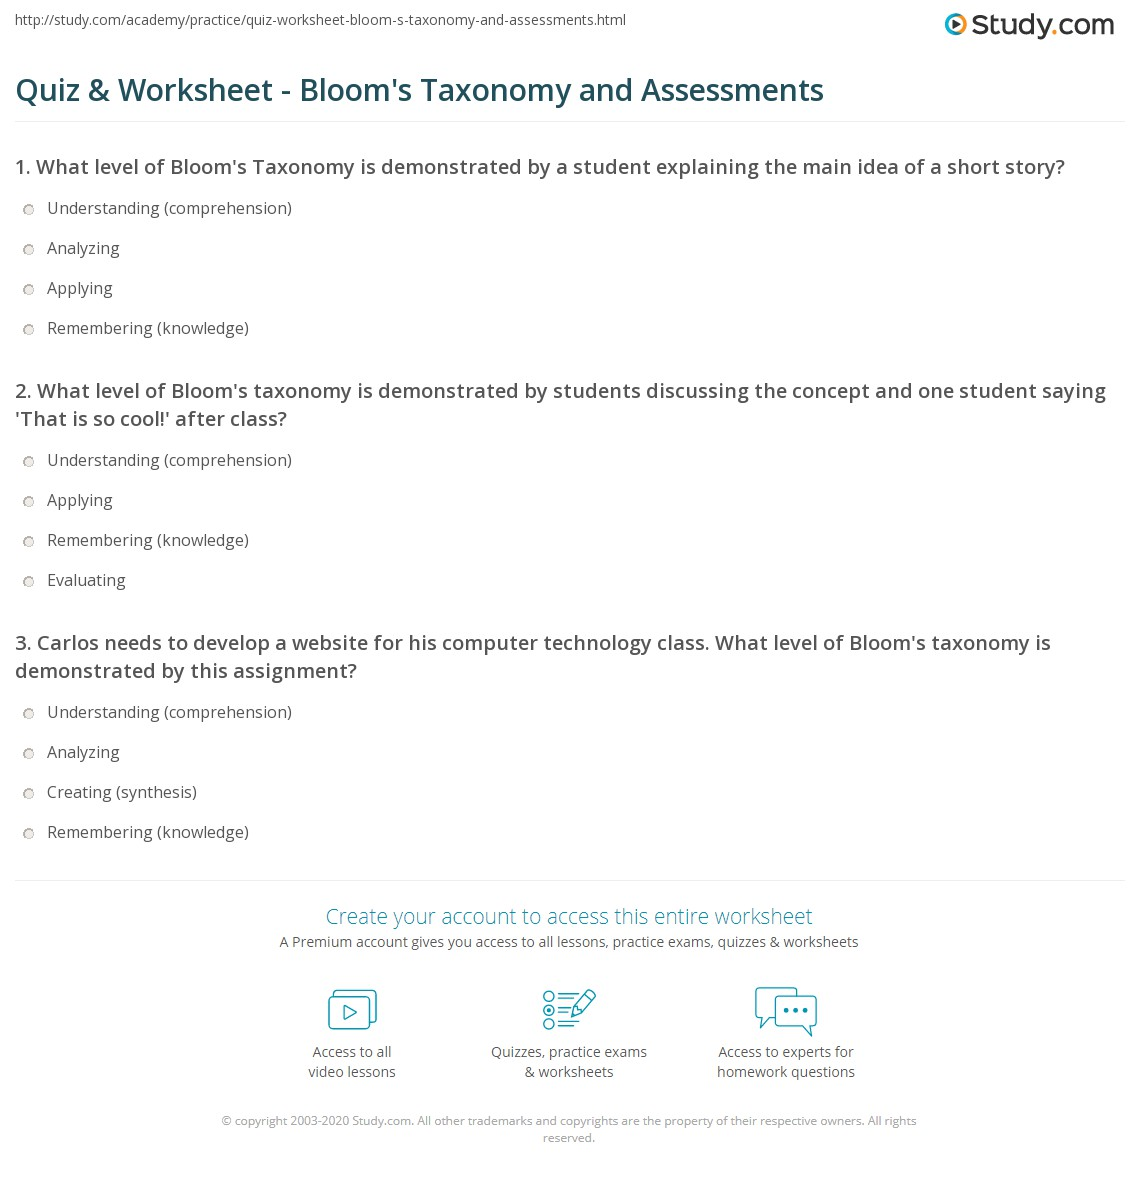 quiz worksheet bloom 39 s taxonomy and assessments. Black Bedroom Furniture Sets. Home Design Ideas